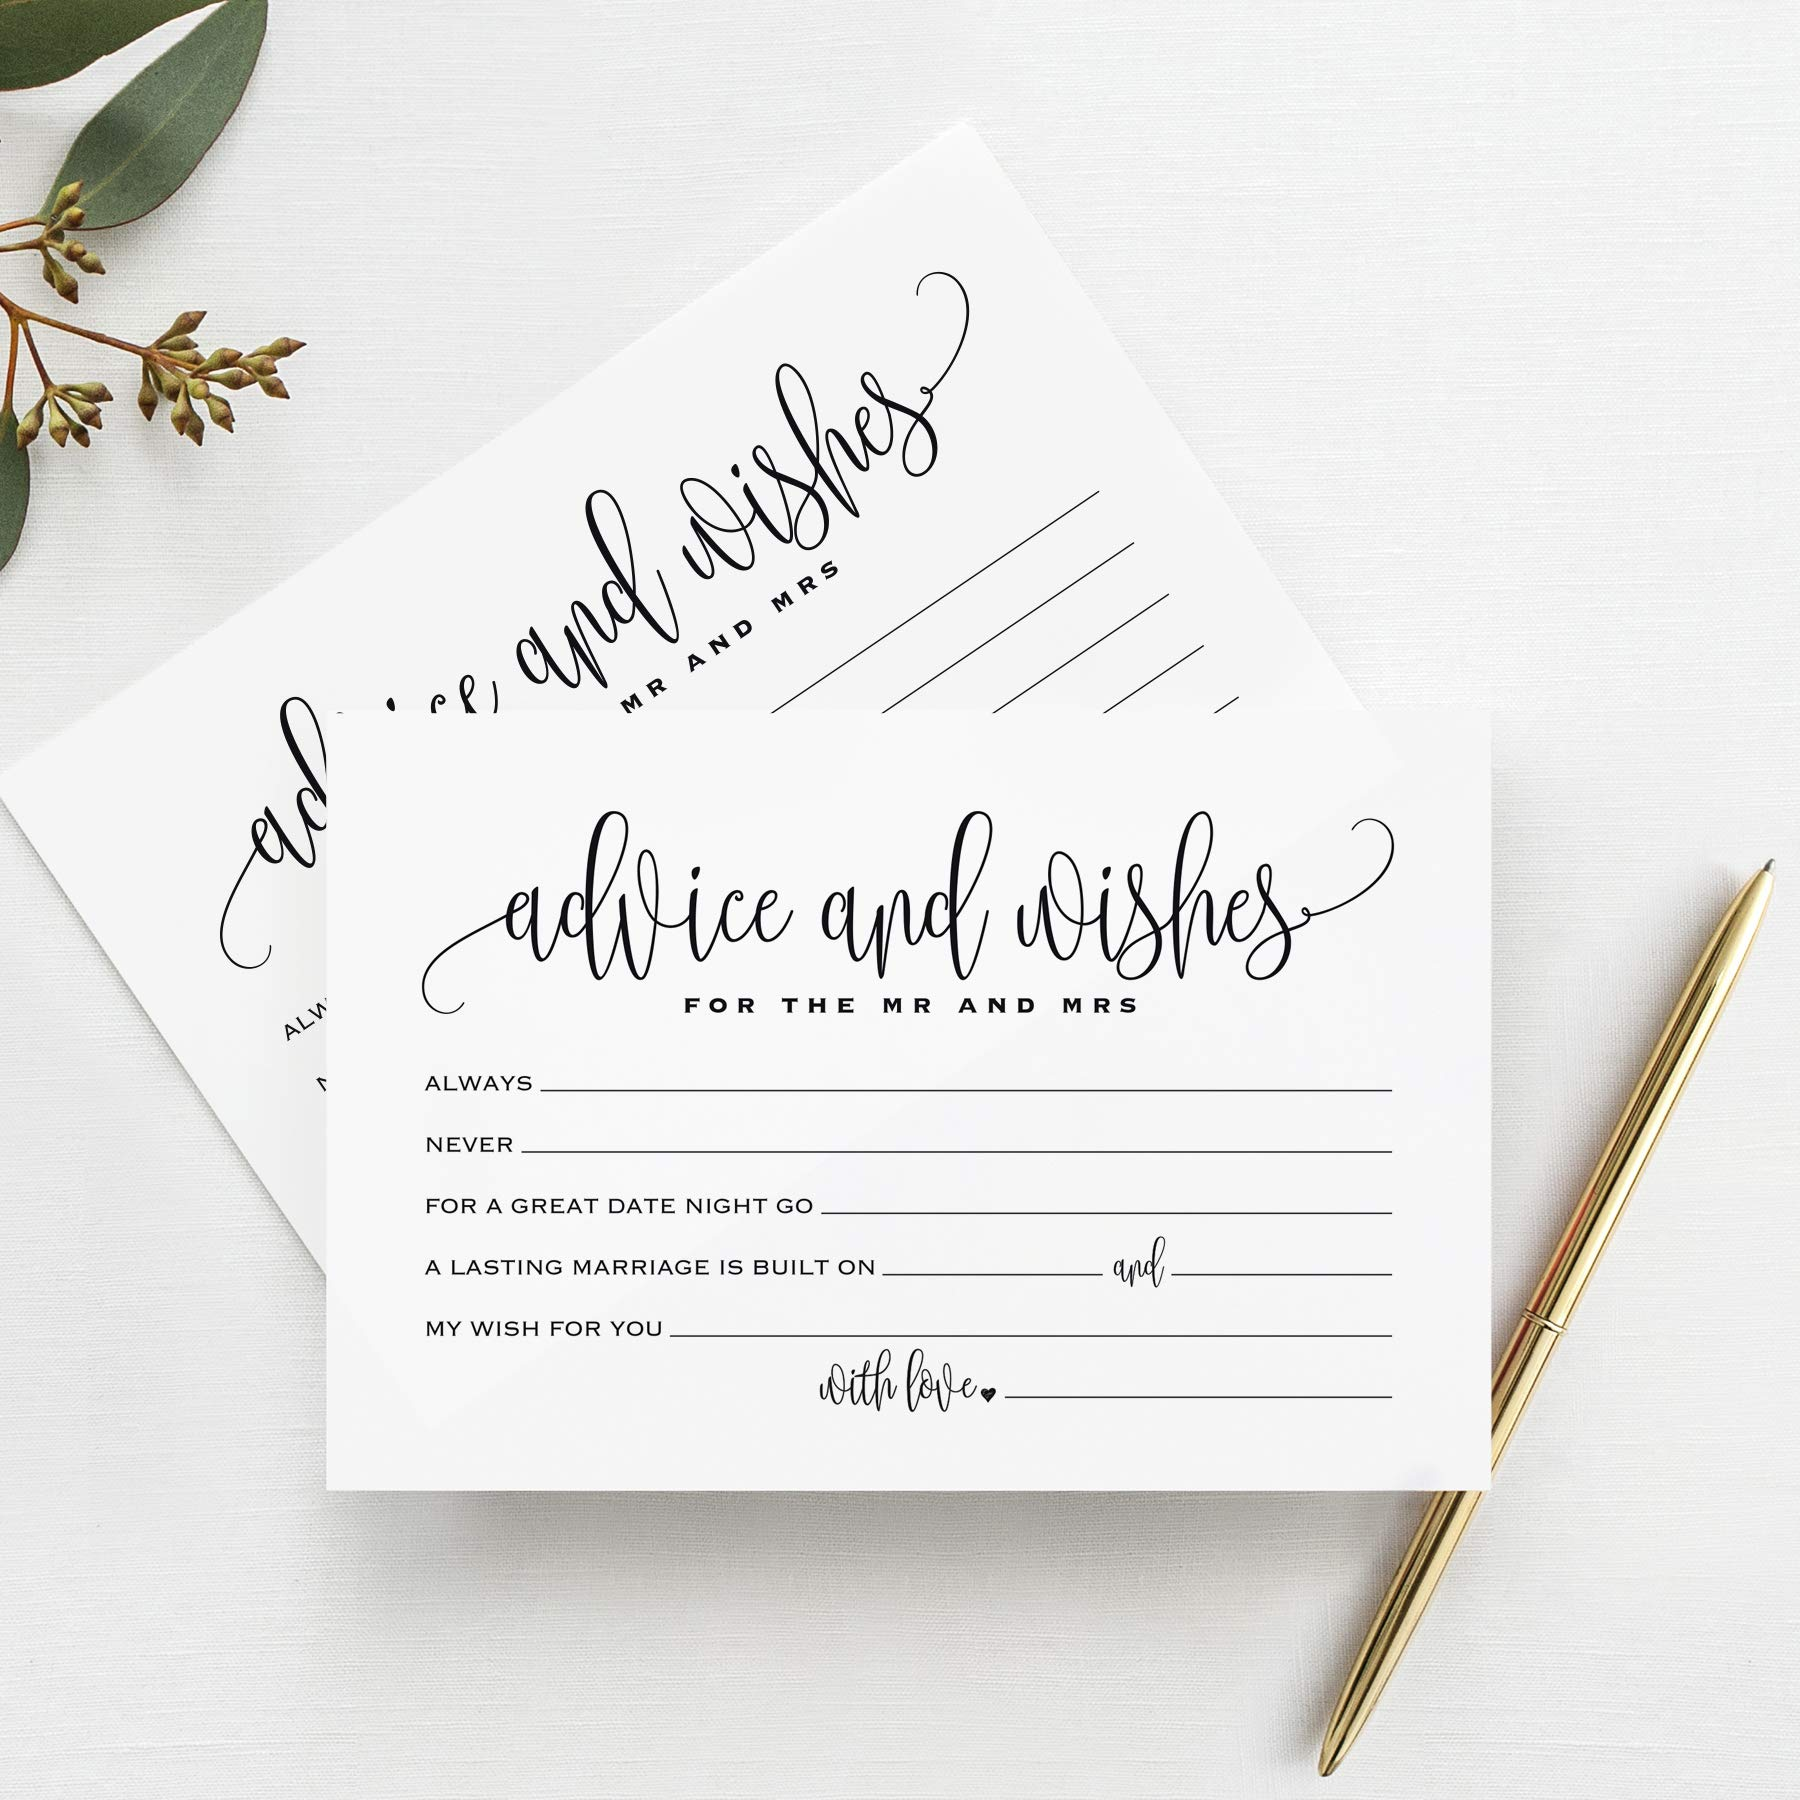 Mad Libs advice and wishes cards for the new Mr and Mrs, Bride and Groom, Newlyweds -Perfect addition to your wedding reception decorations or bridal shower - 4x6 cards (Pack of 50)